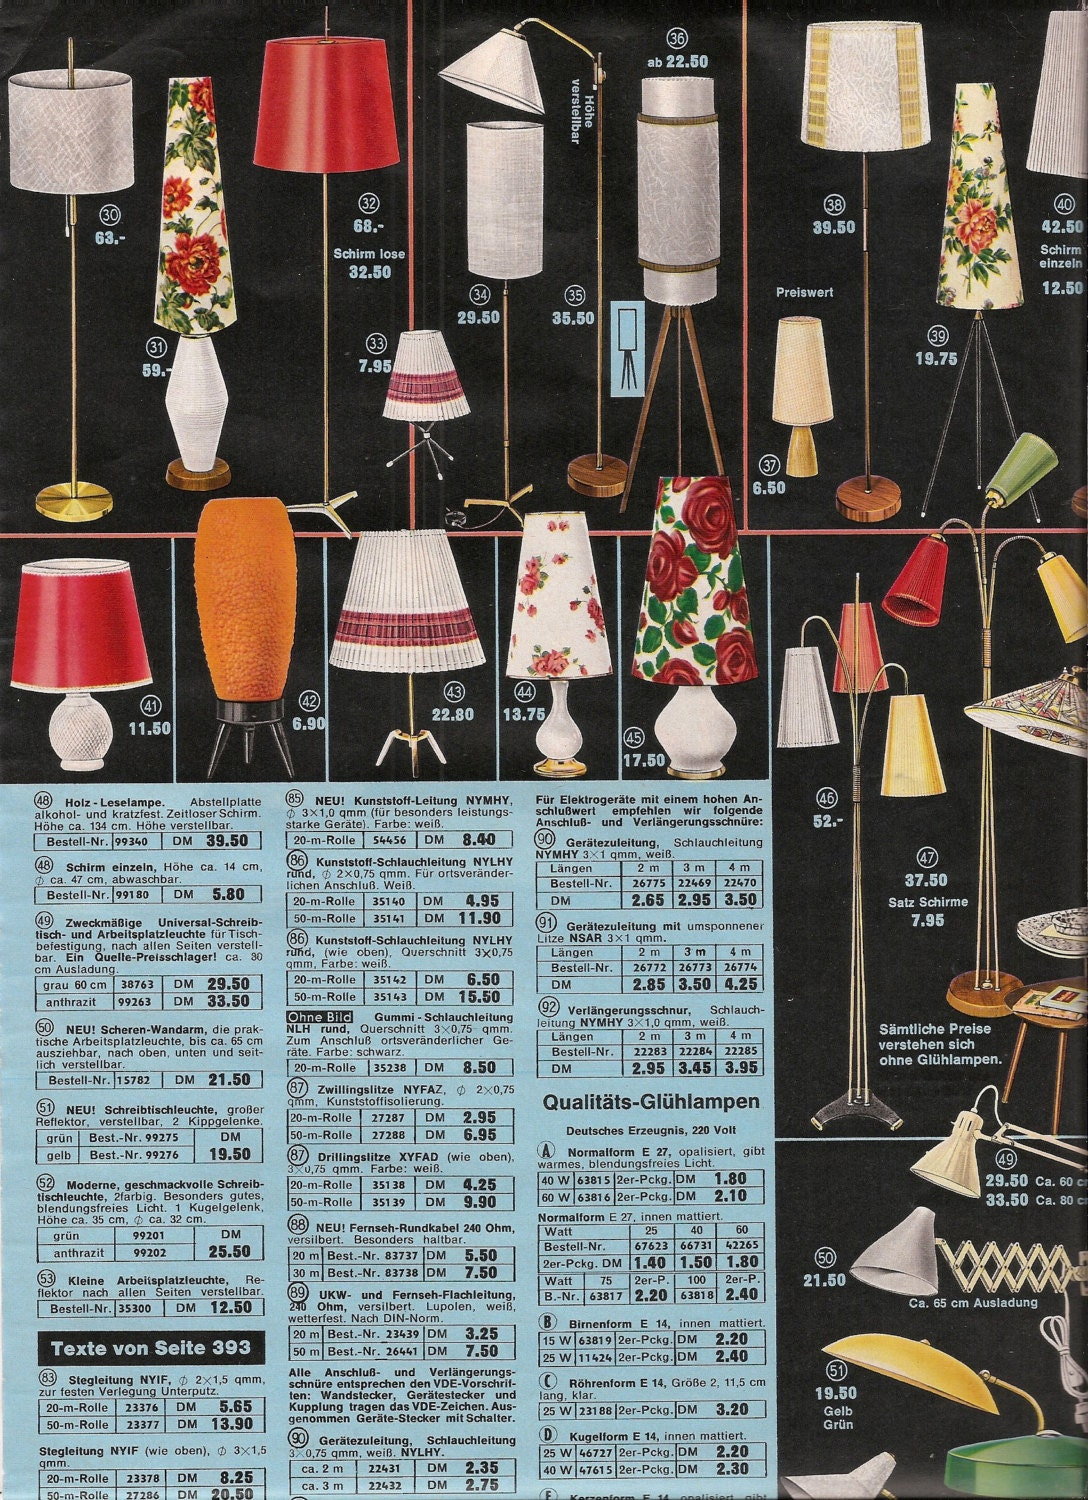 Retro lighting fixtures 1960 39 s home decor pages from an for Home decor 1960s